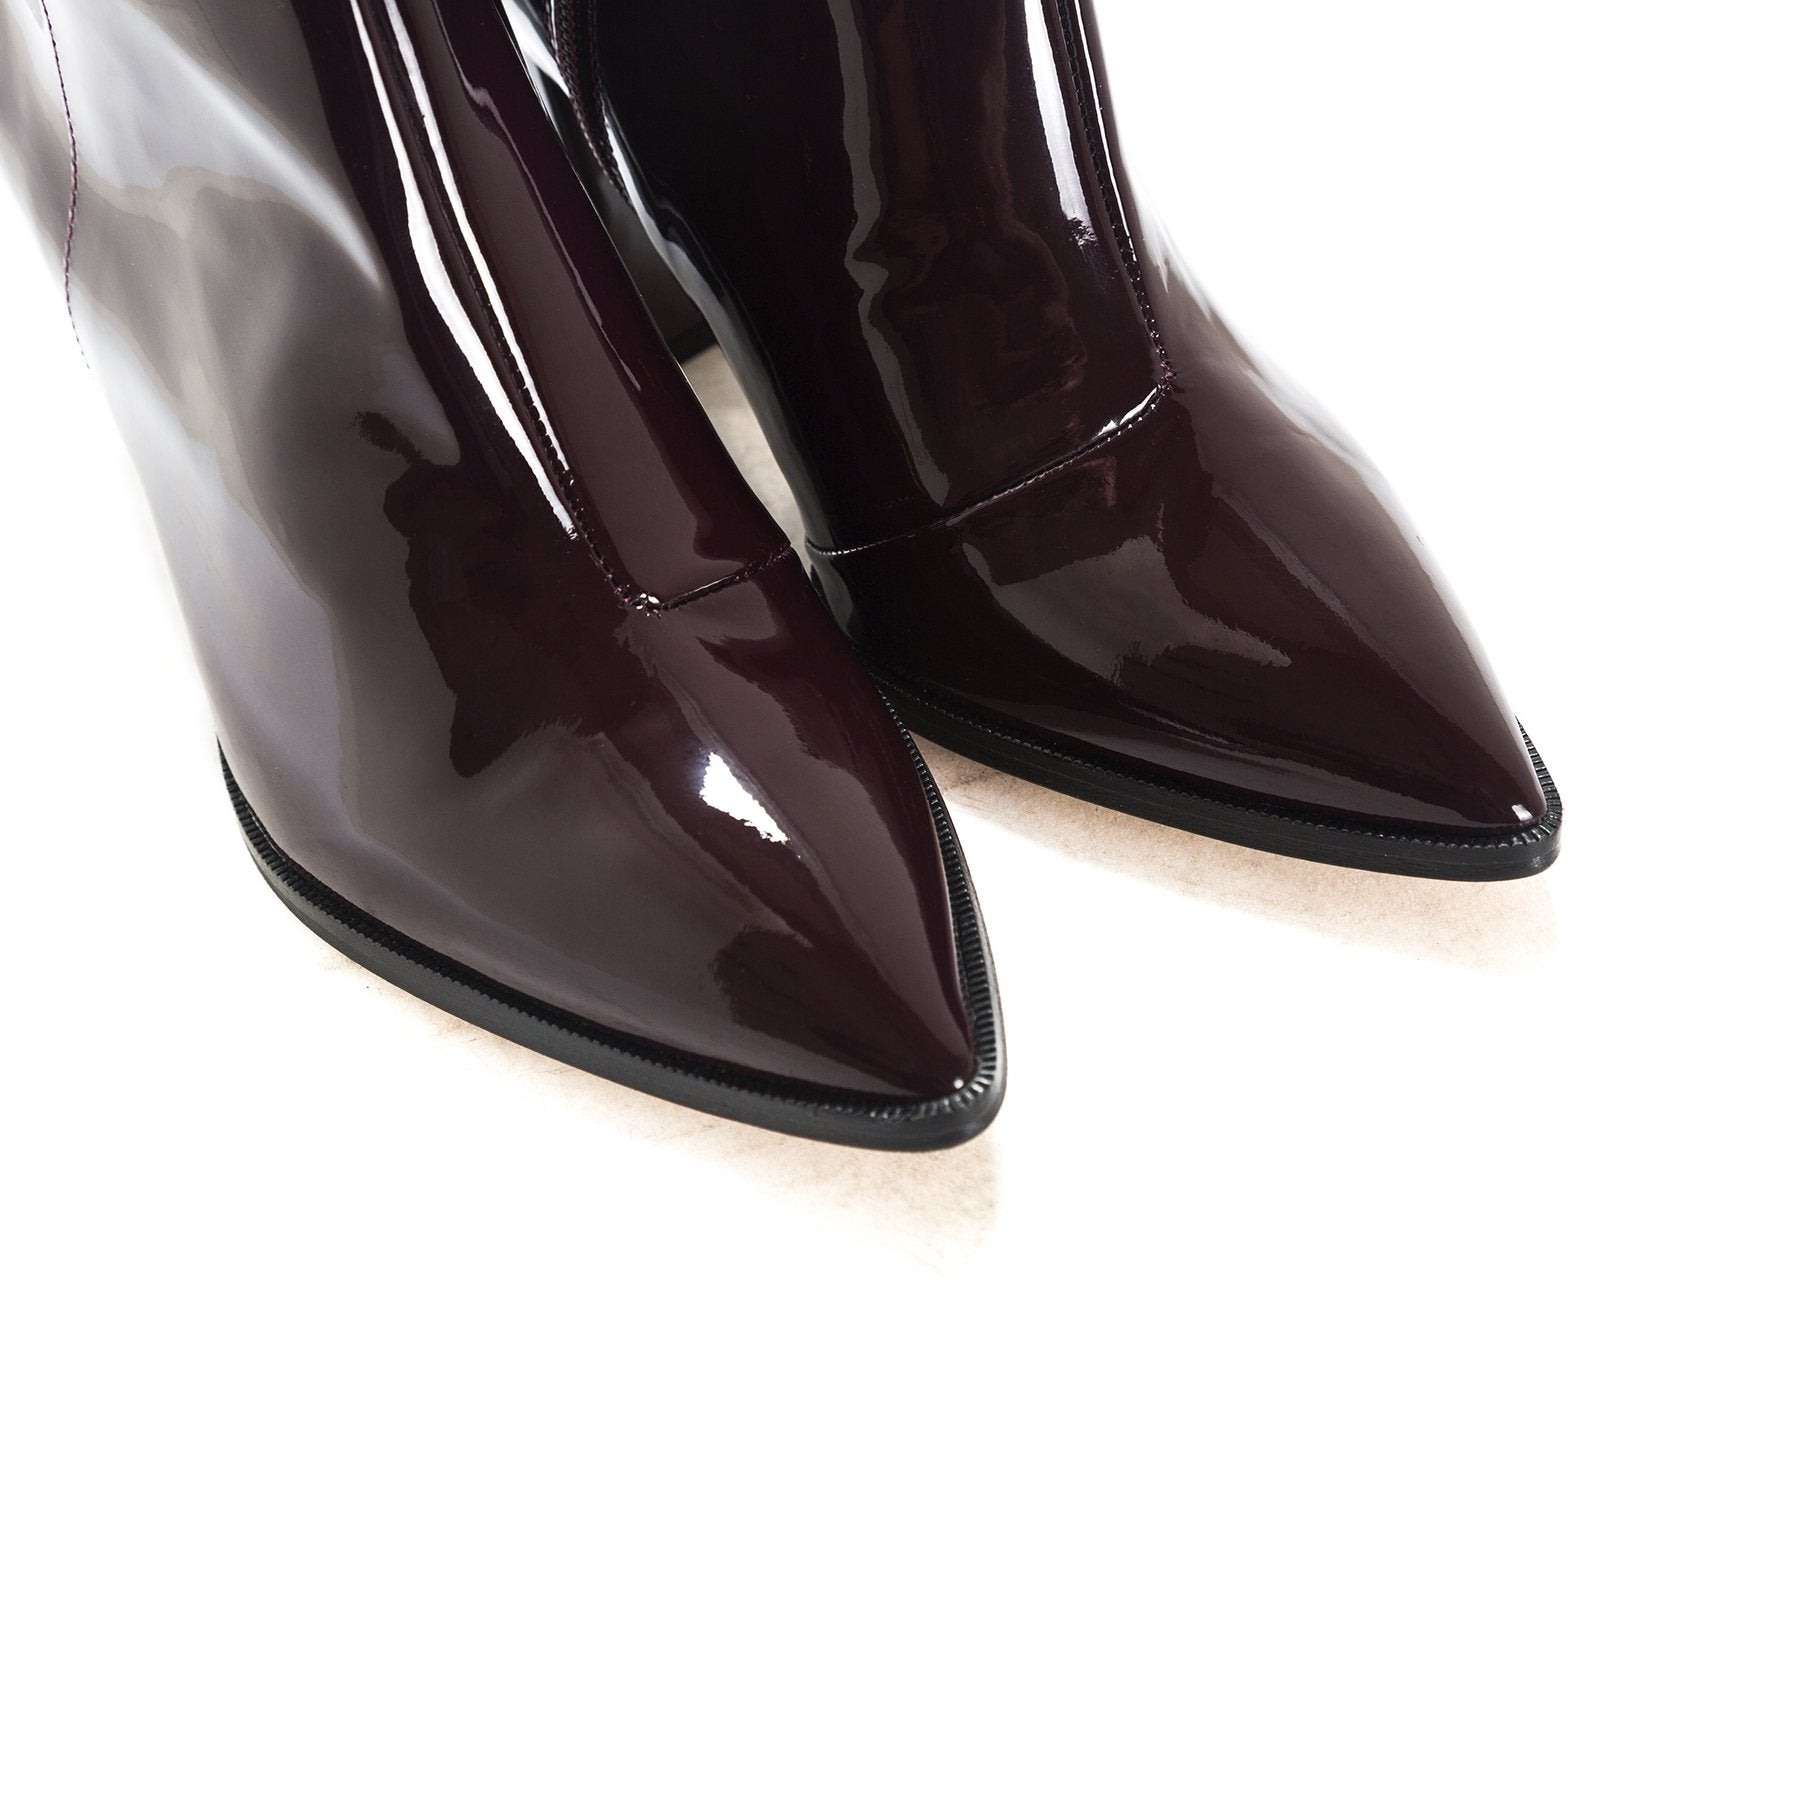 Merco Bordo Patent Boots